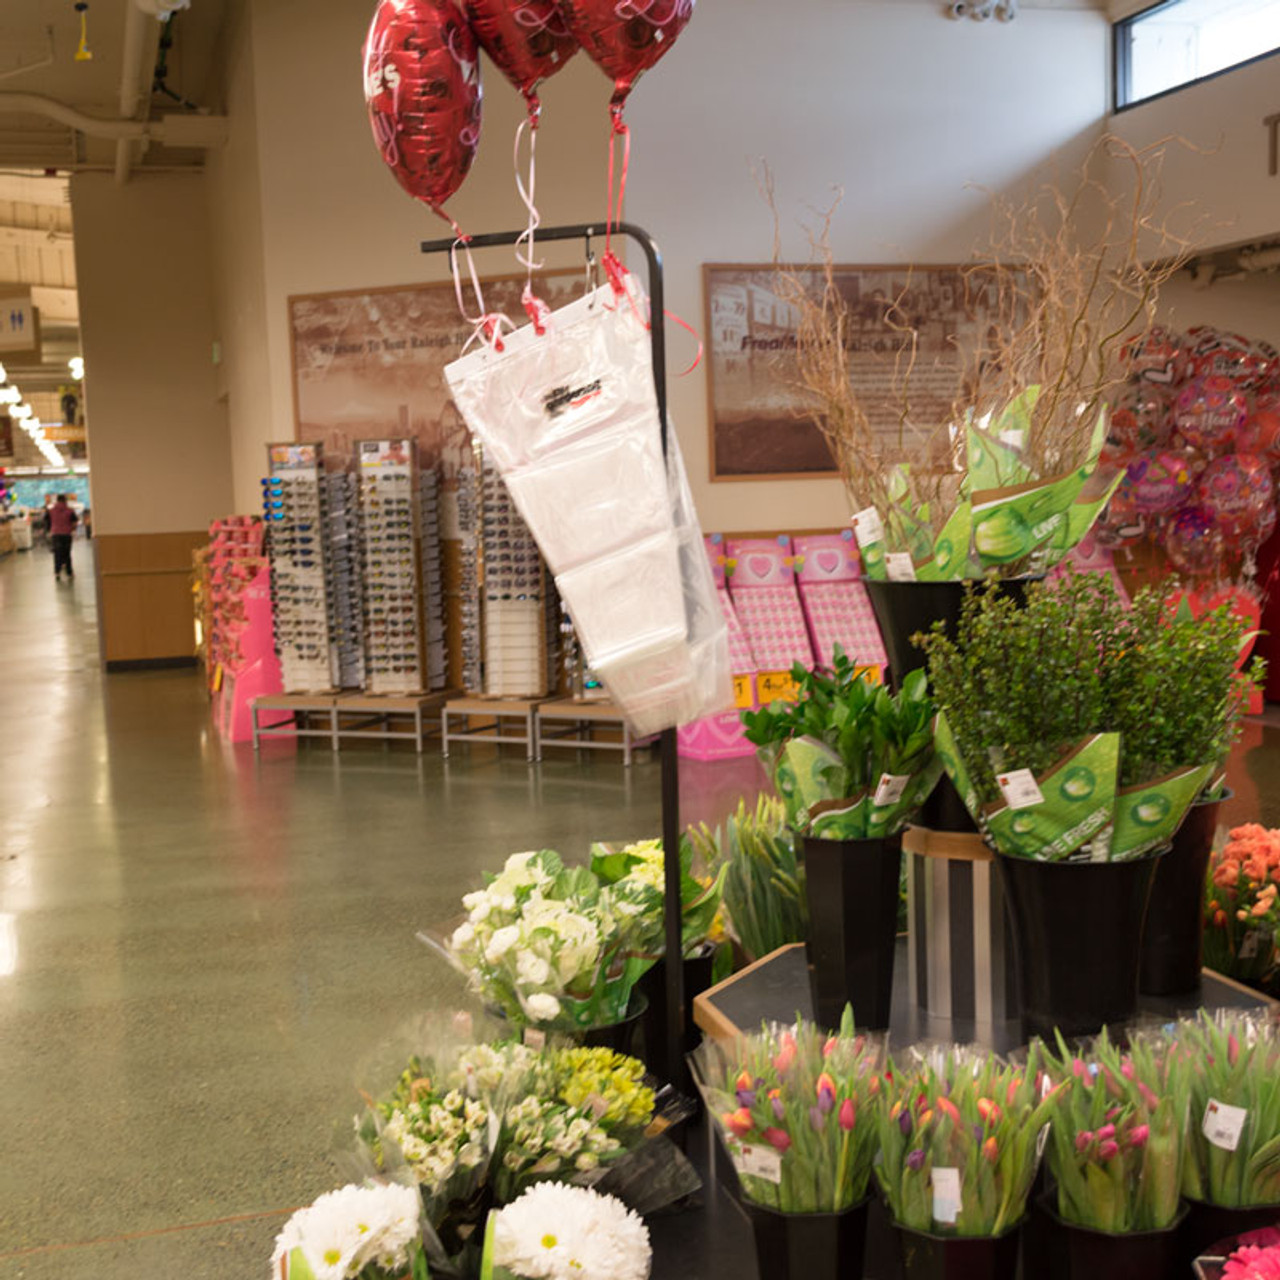 Pallet sign holder being used to dispense bags in floral department